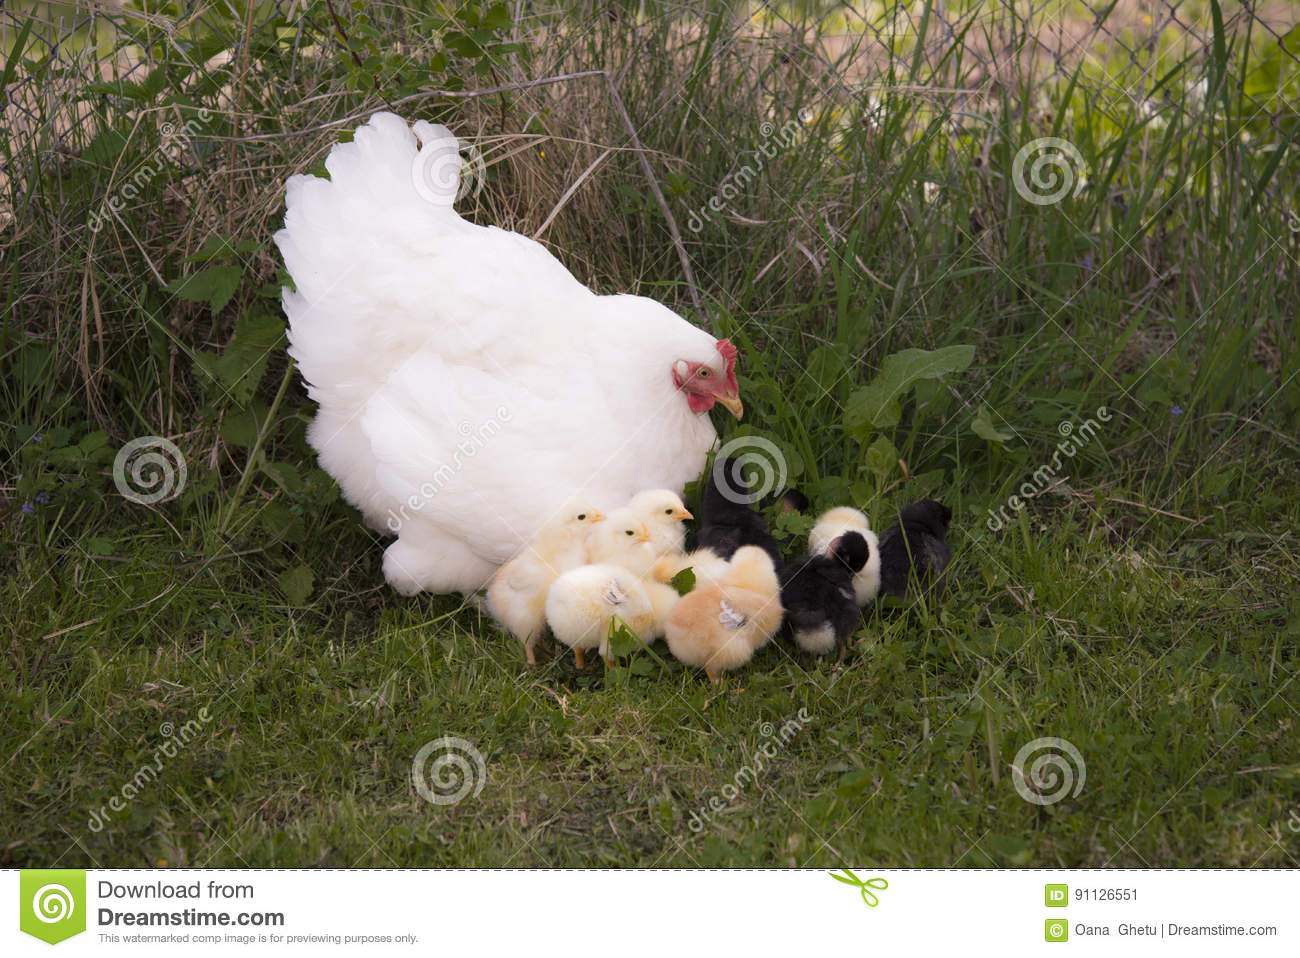 A brood hen with chickens